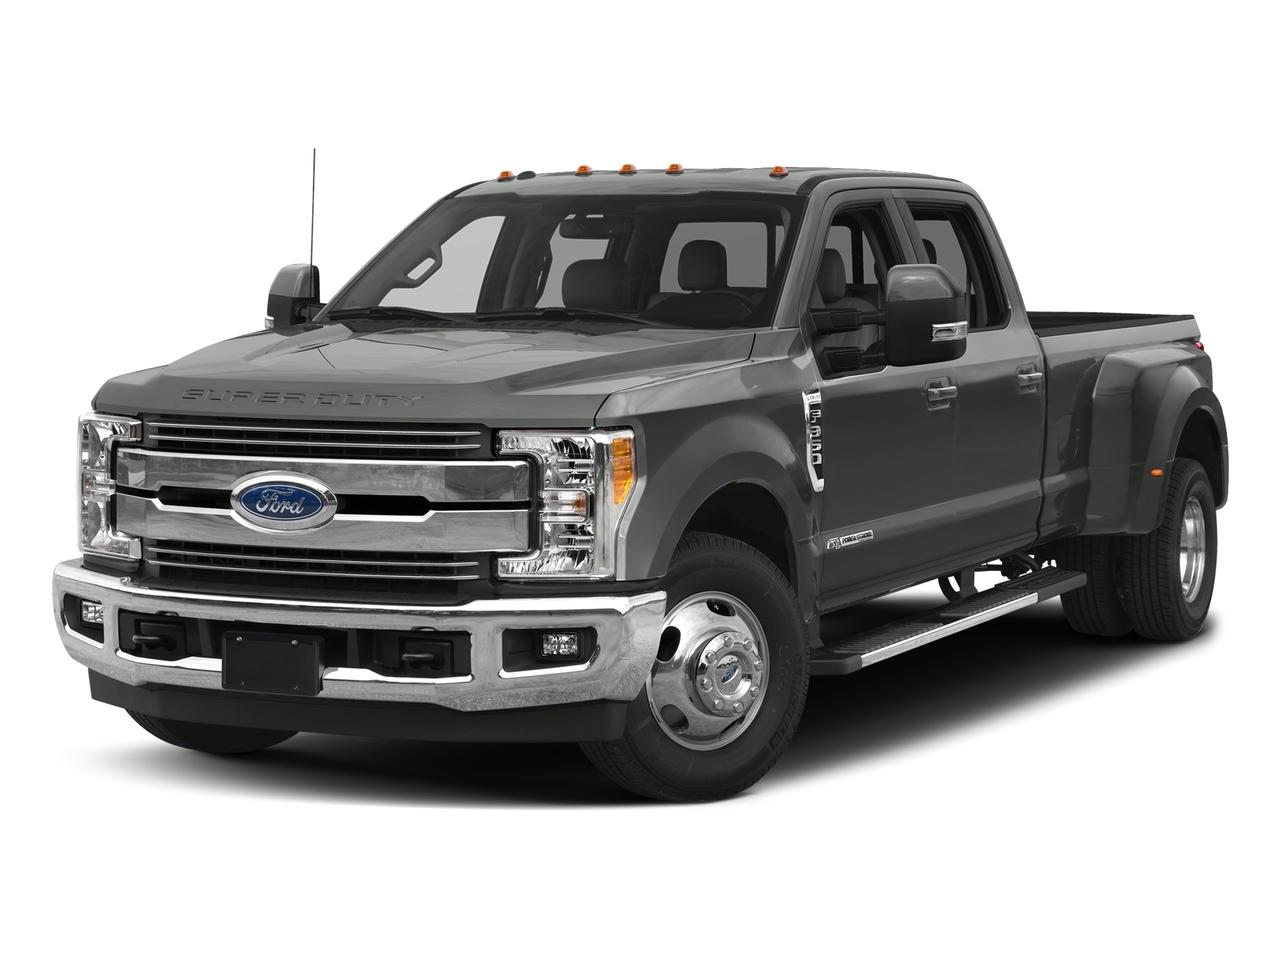 2017 Ford Super Duty F-350 DRW Vehicle Photo in Portland, OR 97225